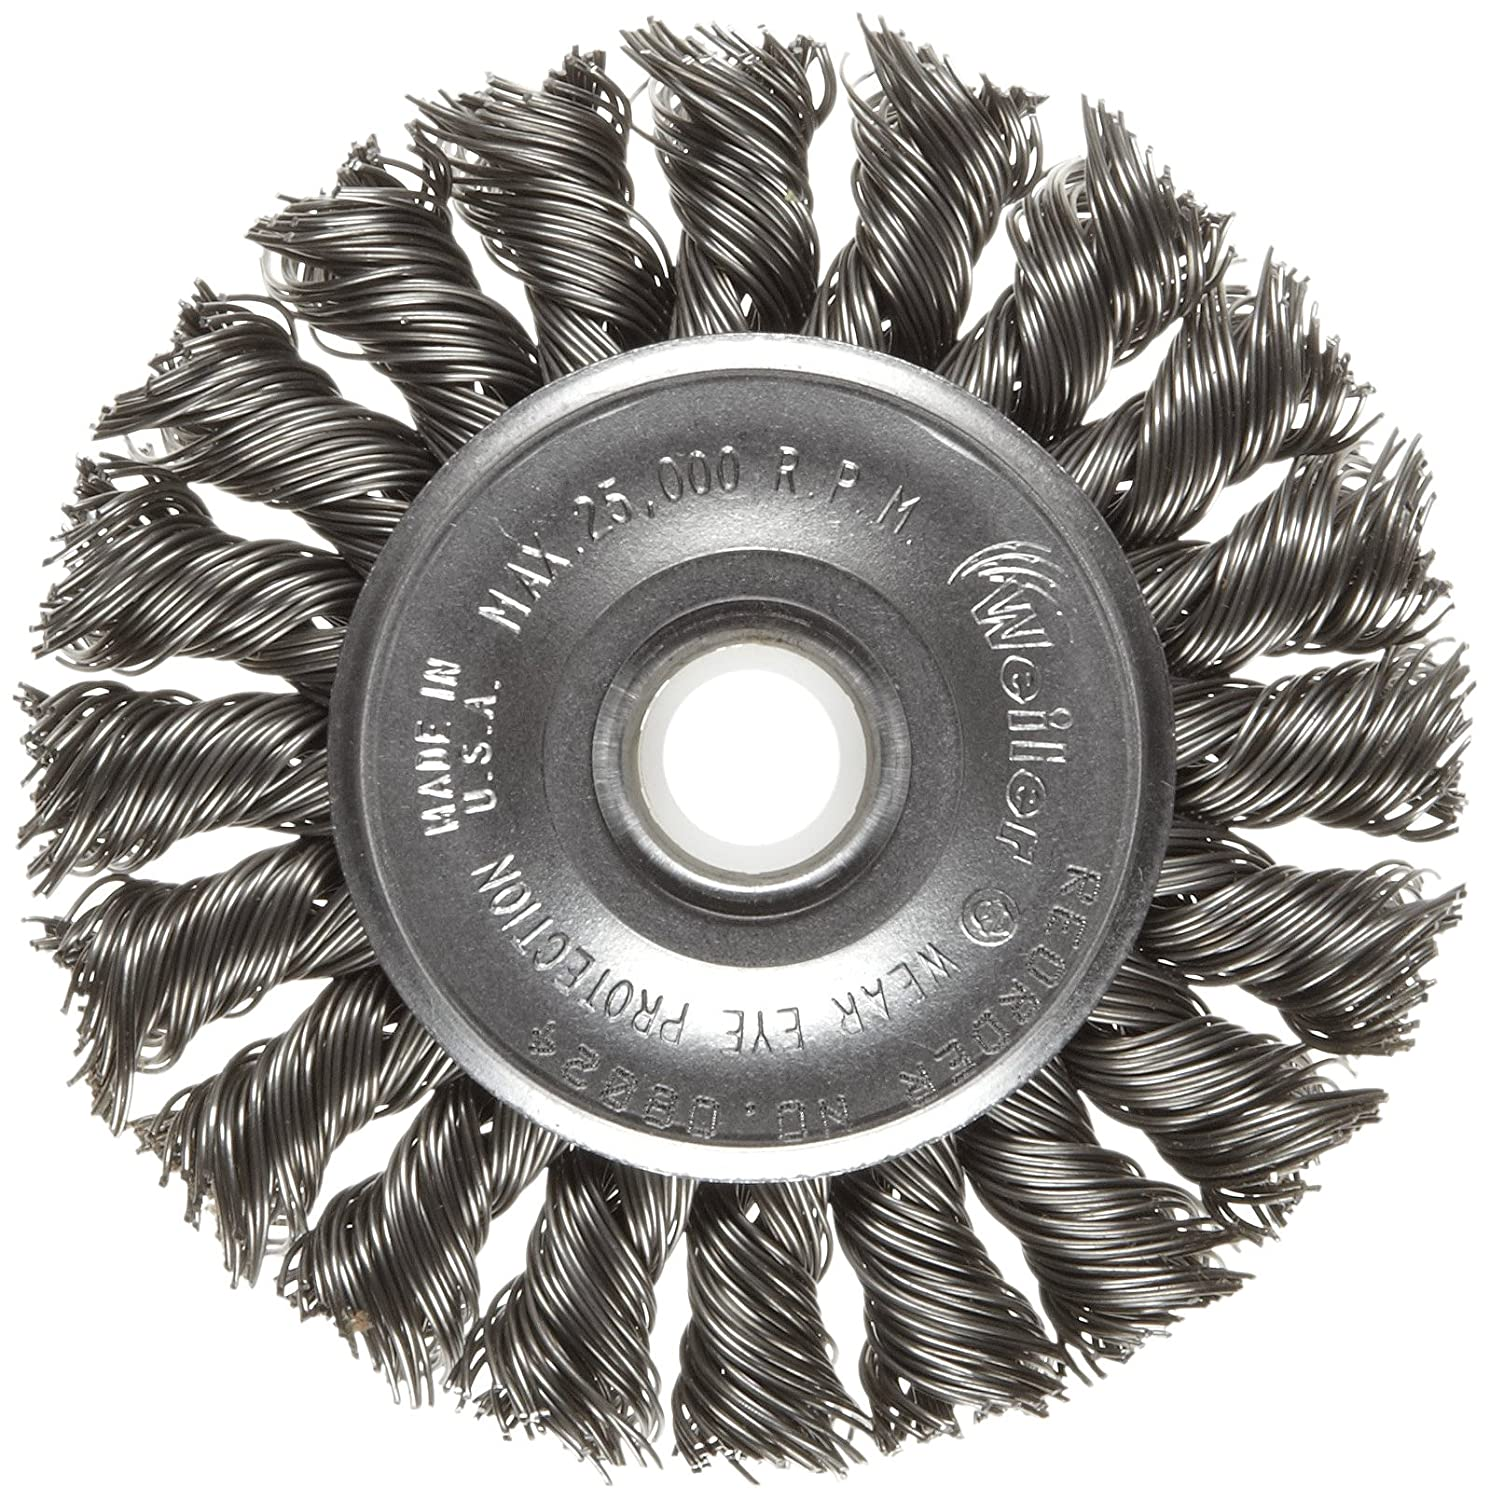 Alfa Tools WB67180SS 2-3//8 x 5//8-11 Stainless Steel Knotted Cup Brush